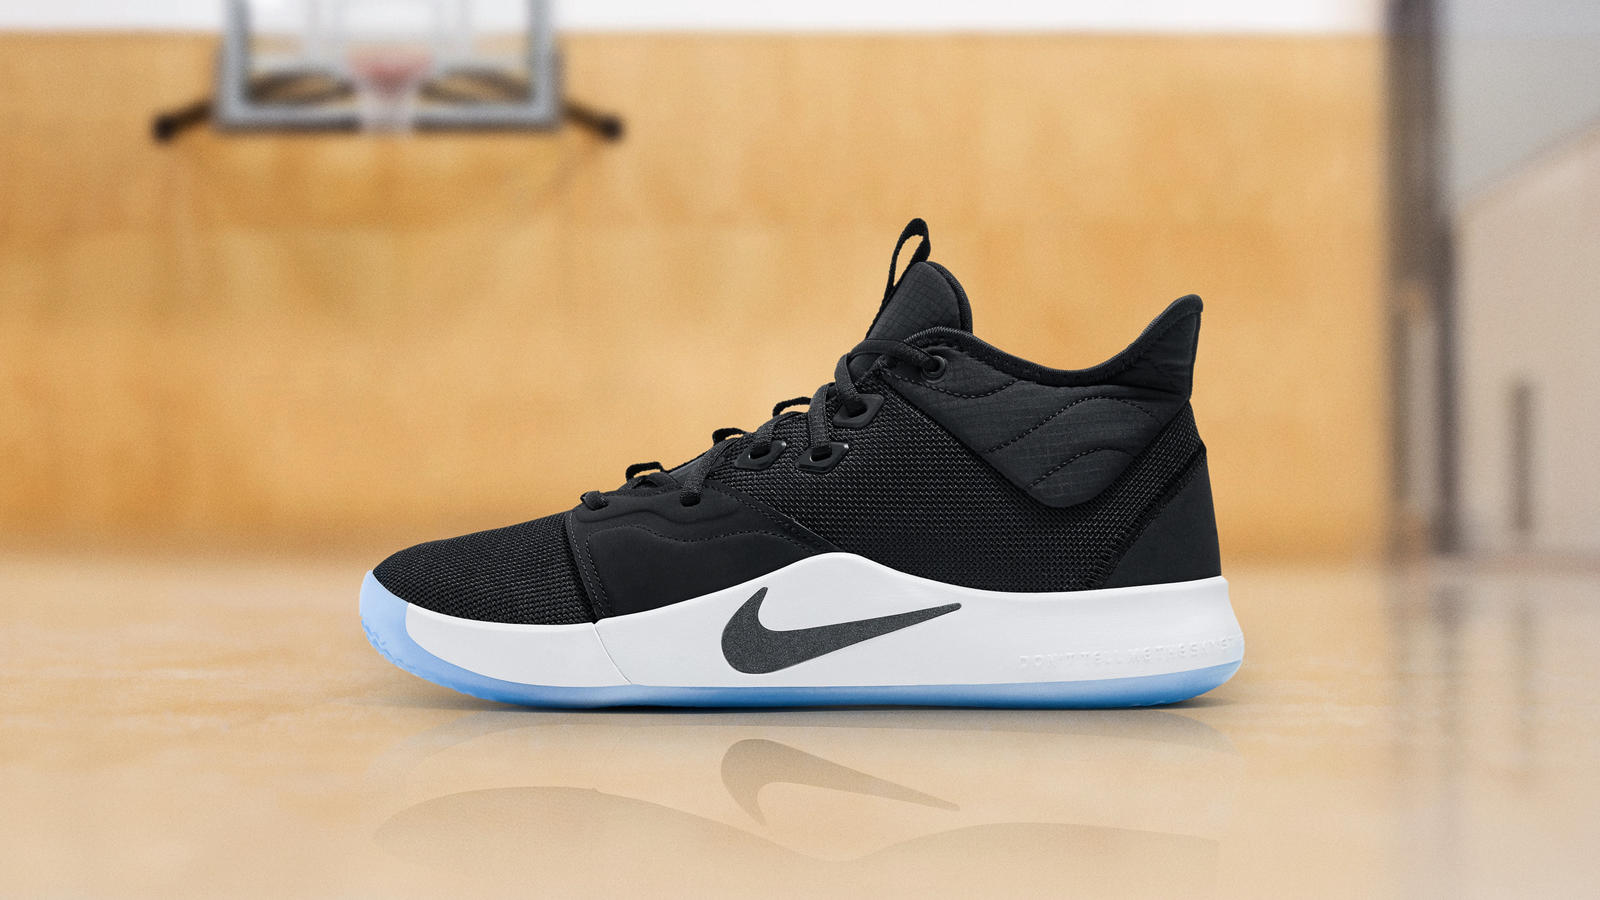 the best attitude 69703 fd33a Paul George PG3 Black and White - Nike News